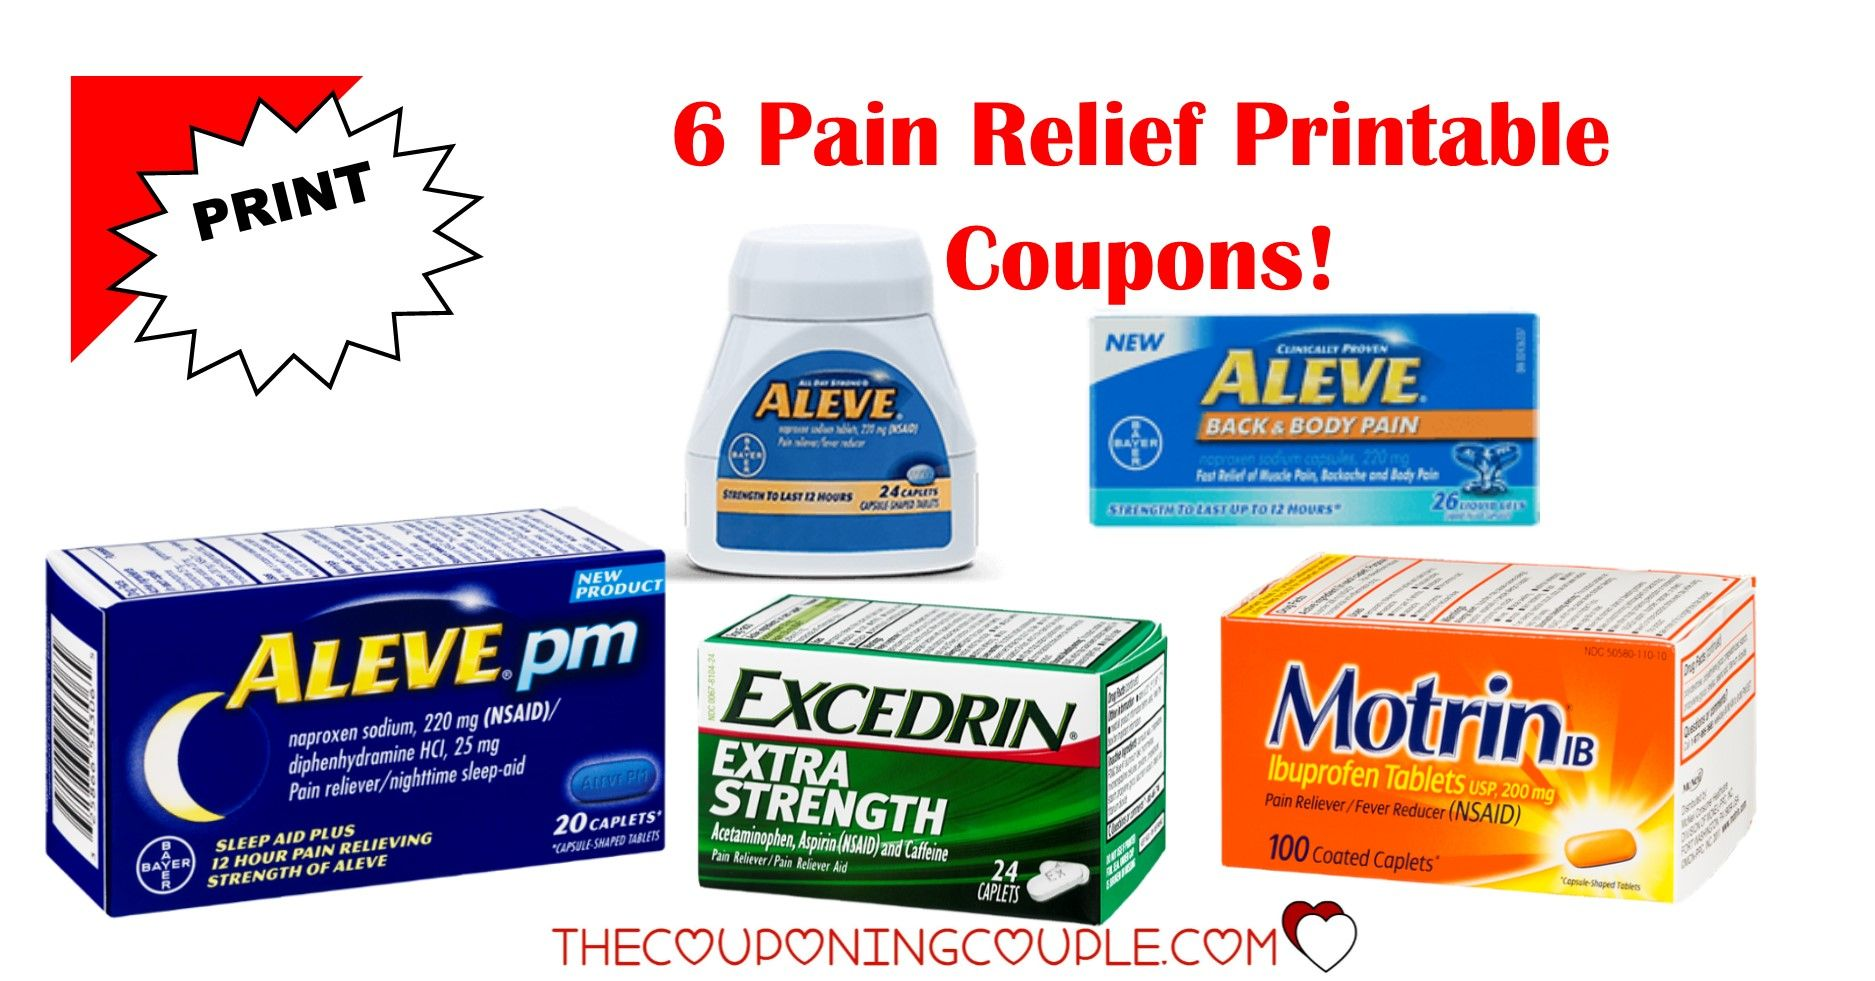 graphic relating to Advil Coupons Printable titled 6 Agony Reduction Printable Discount codes ~ Advil, Aleve Excedrin